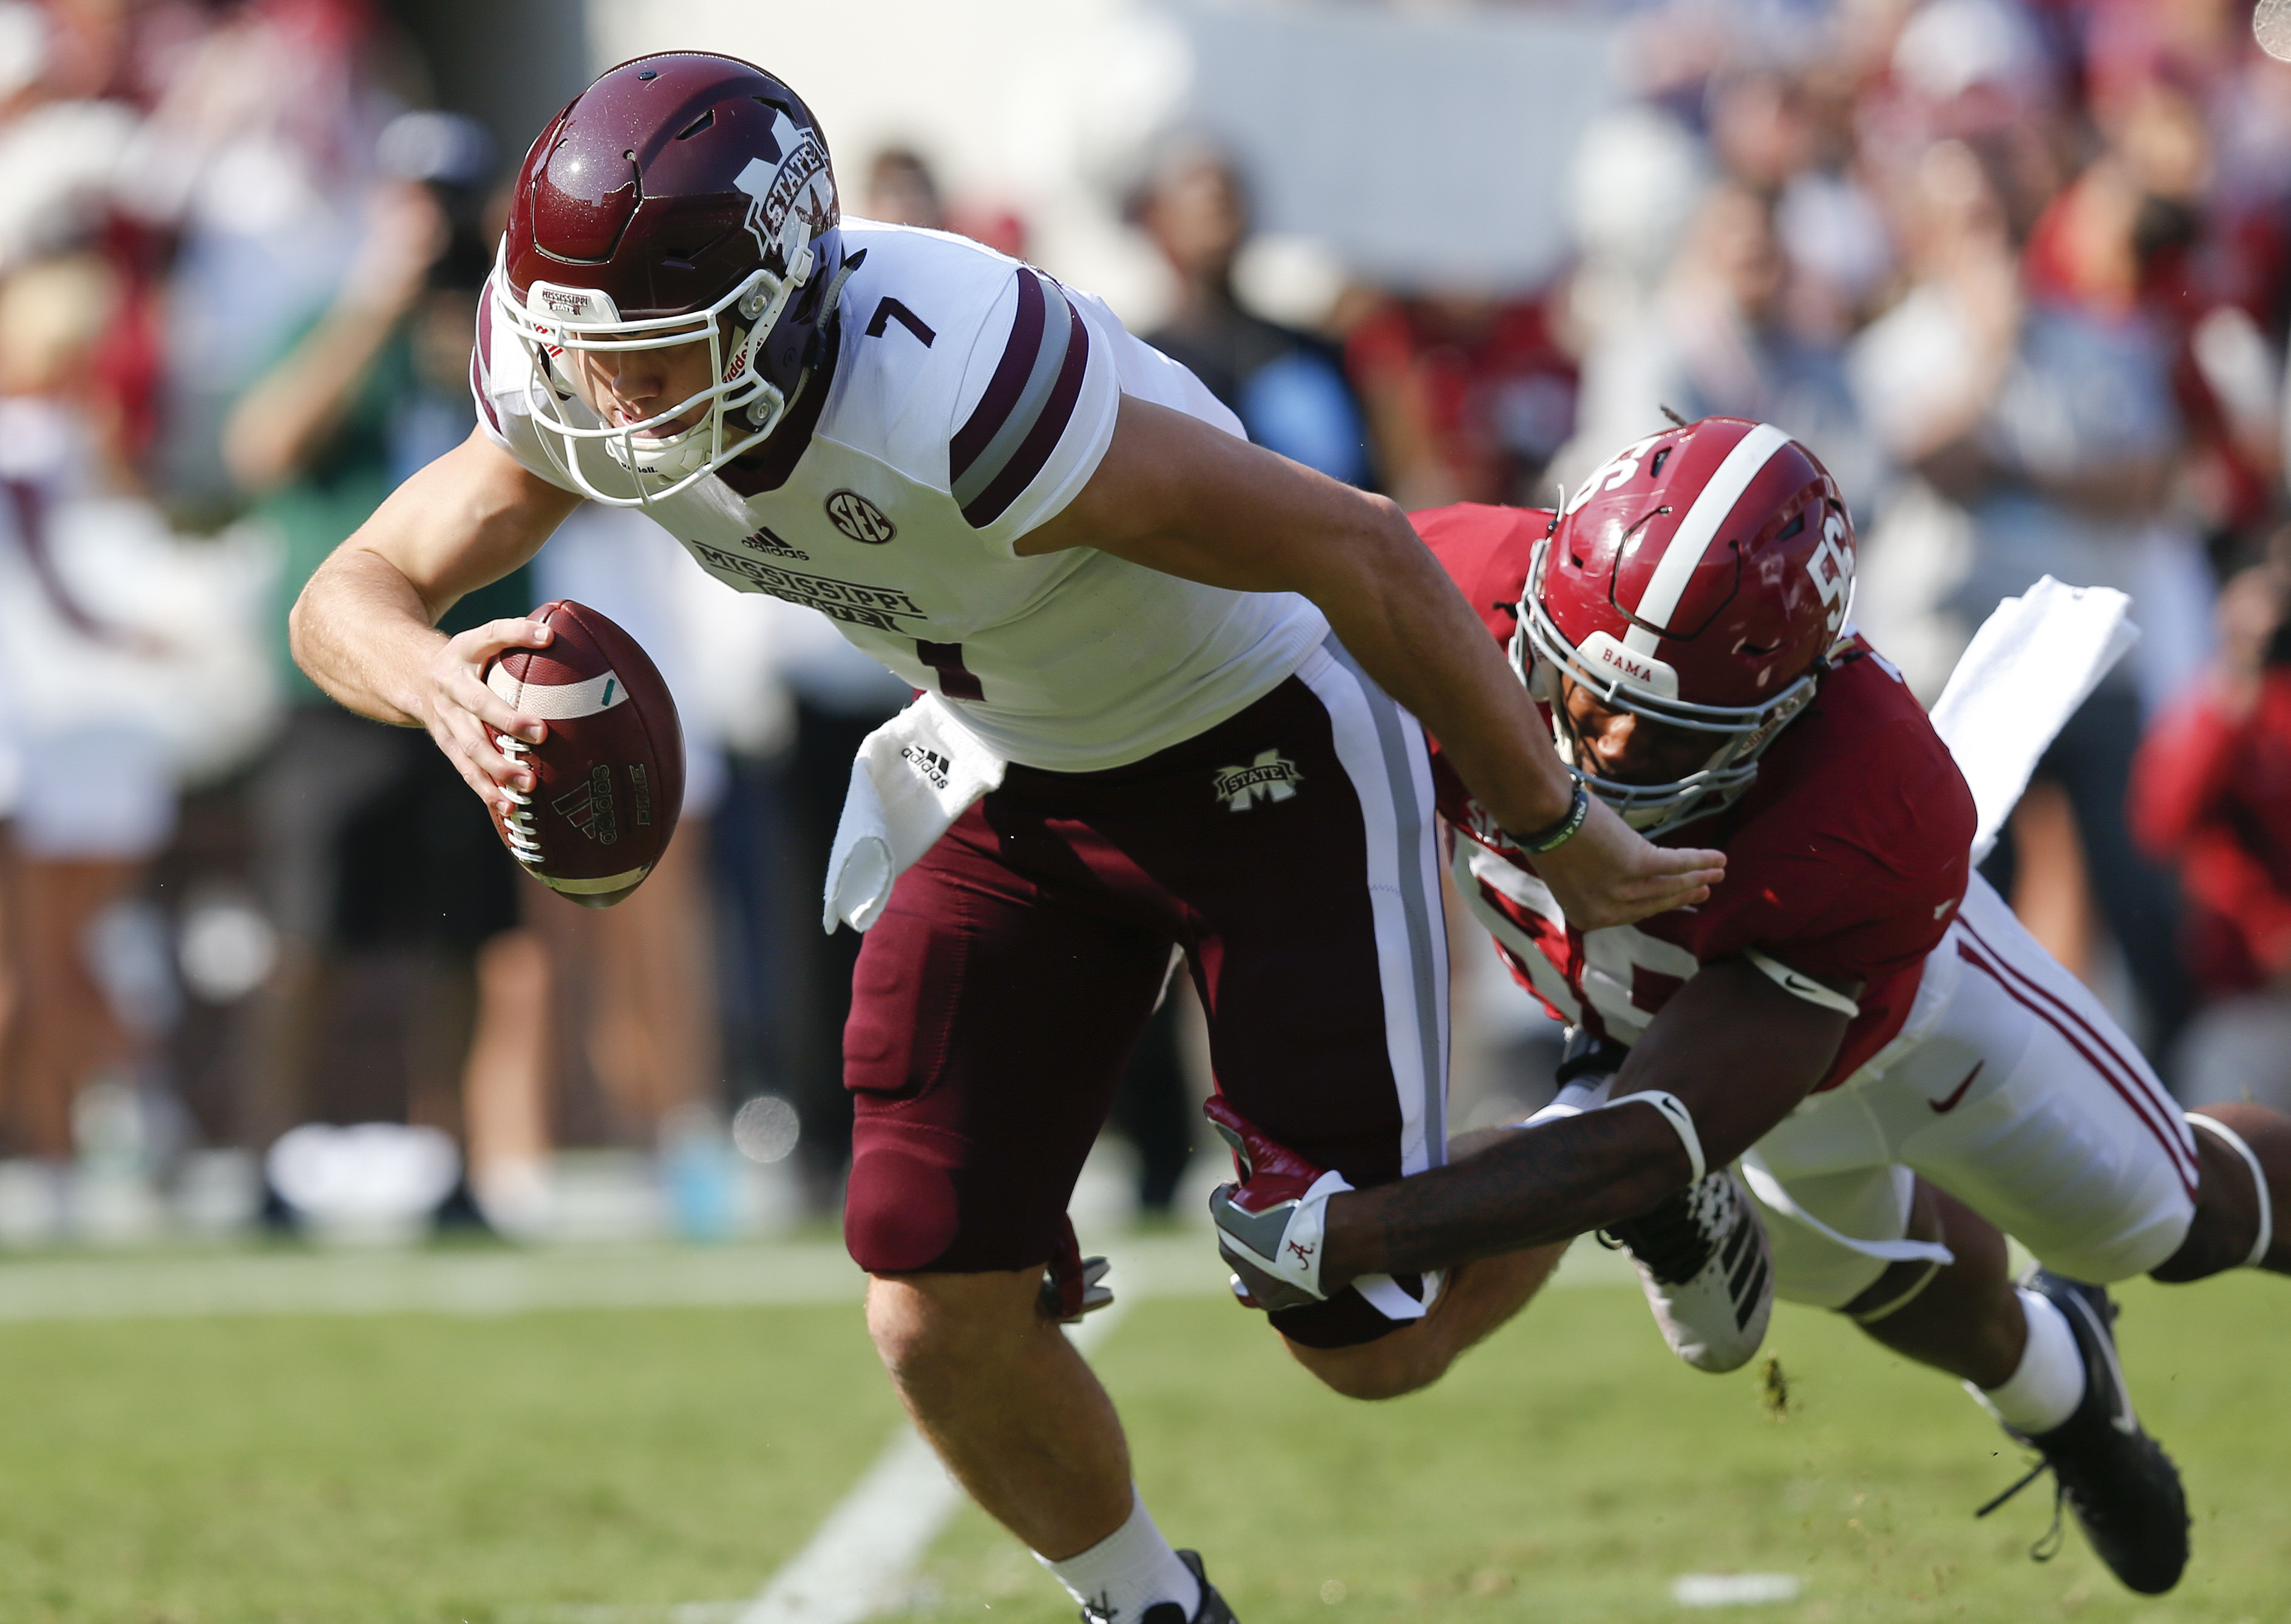 Alabama linebacker Tim Williams, right, sacks Mississippi State quarterback Nick Fitzgerald during the first half of an NCAA college football game, Saturday, Nov. 12, 2016, in Tuscaloosa, Ala. (AP Photo/Brynn Anderson)